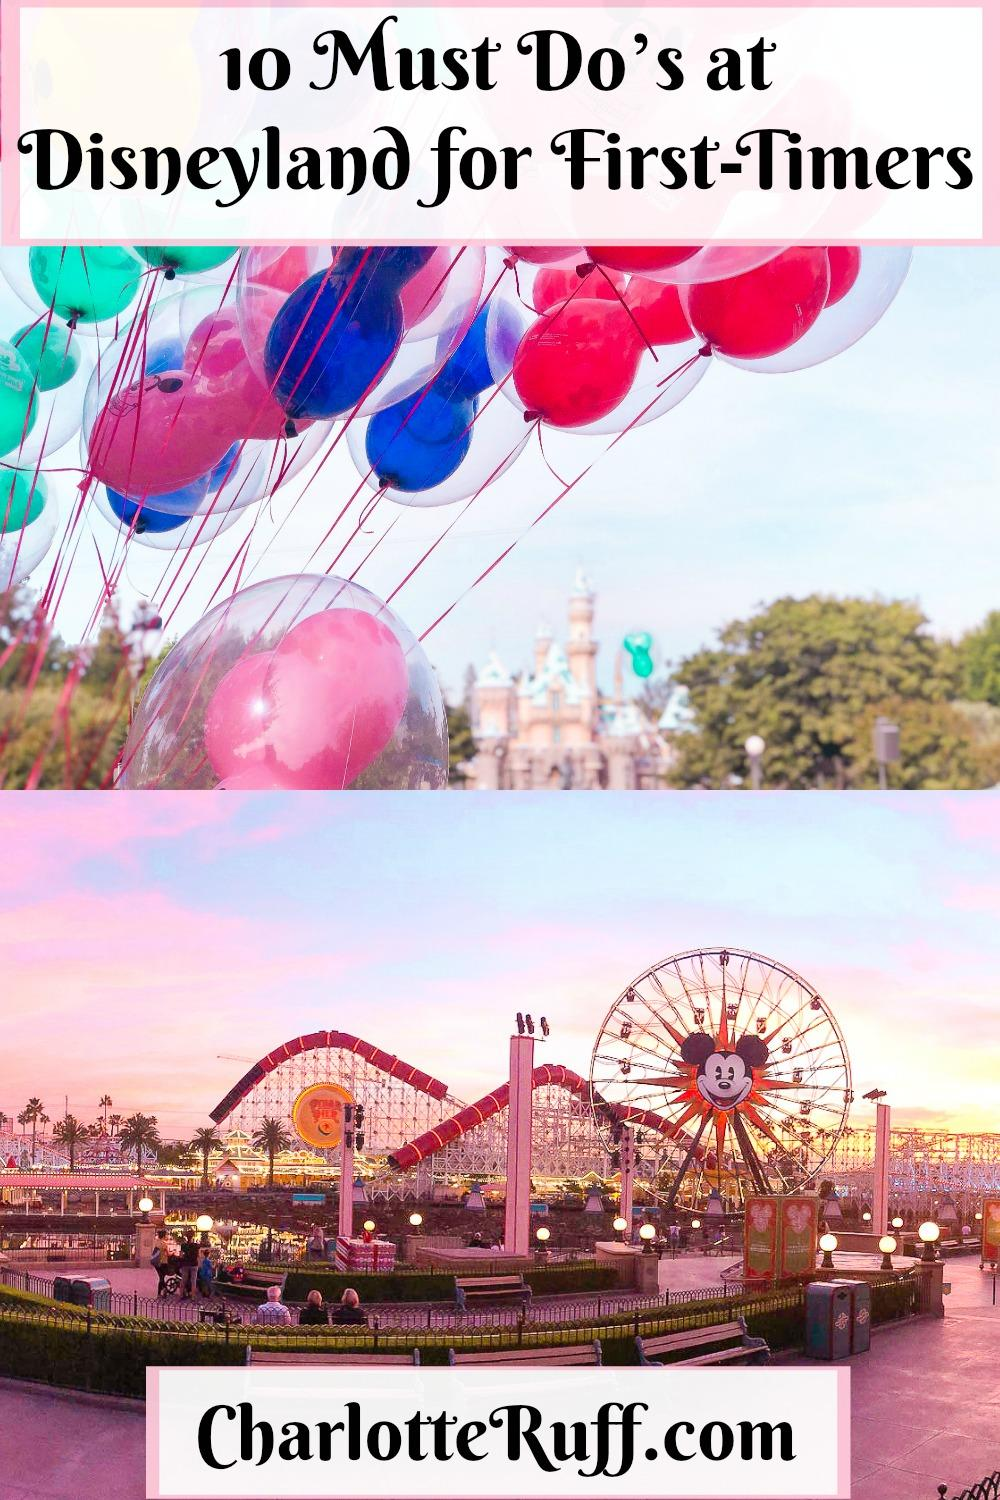 10 Must Do's at Disneyland for First-Timers